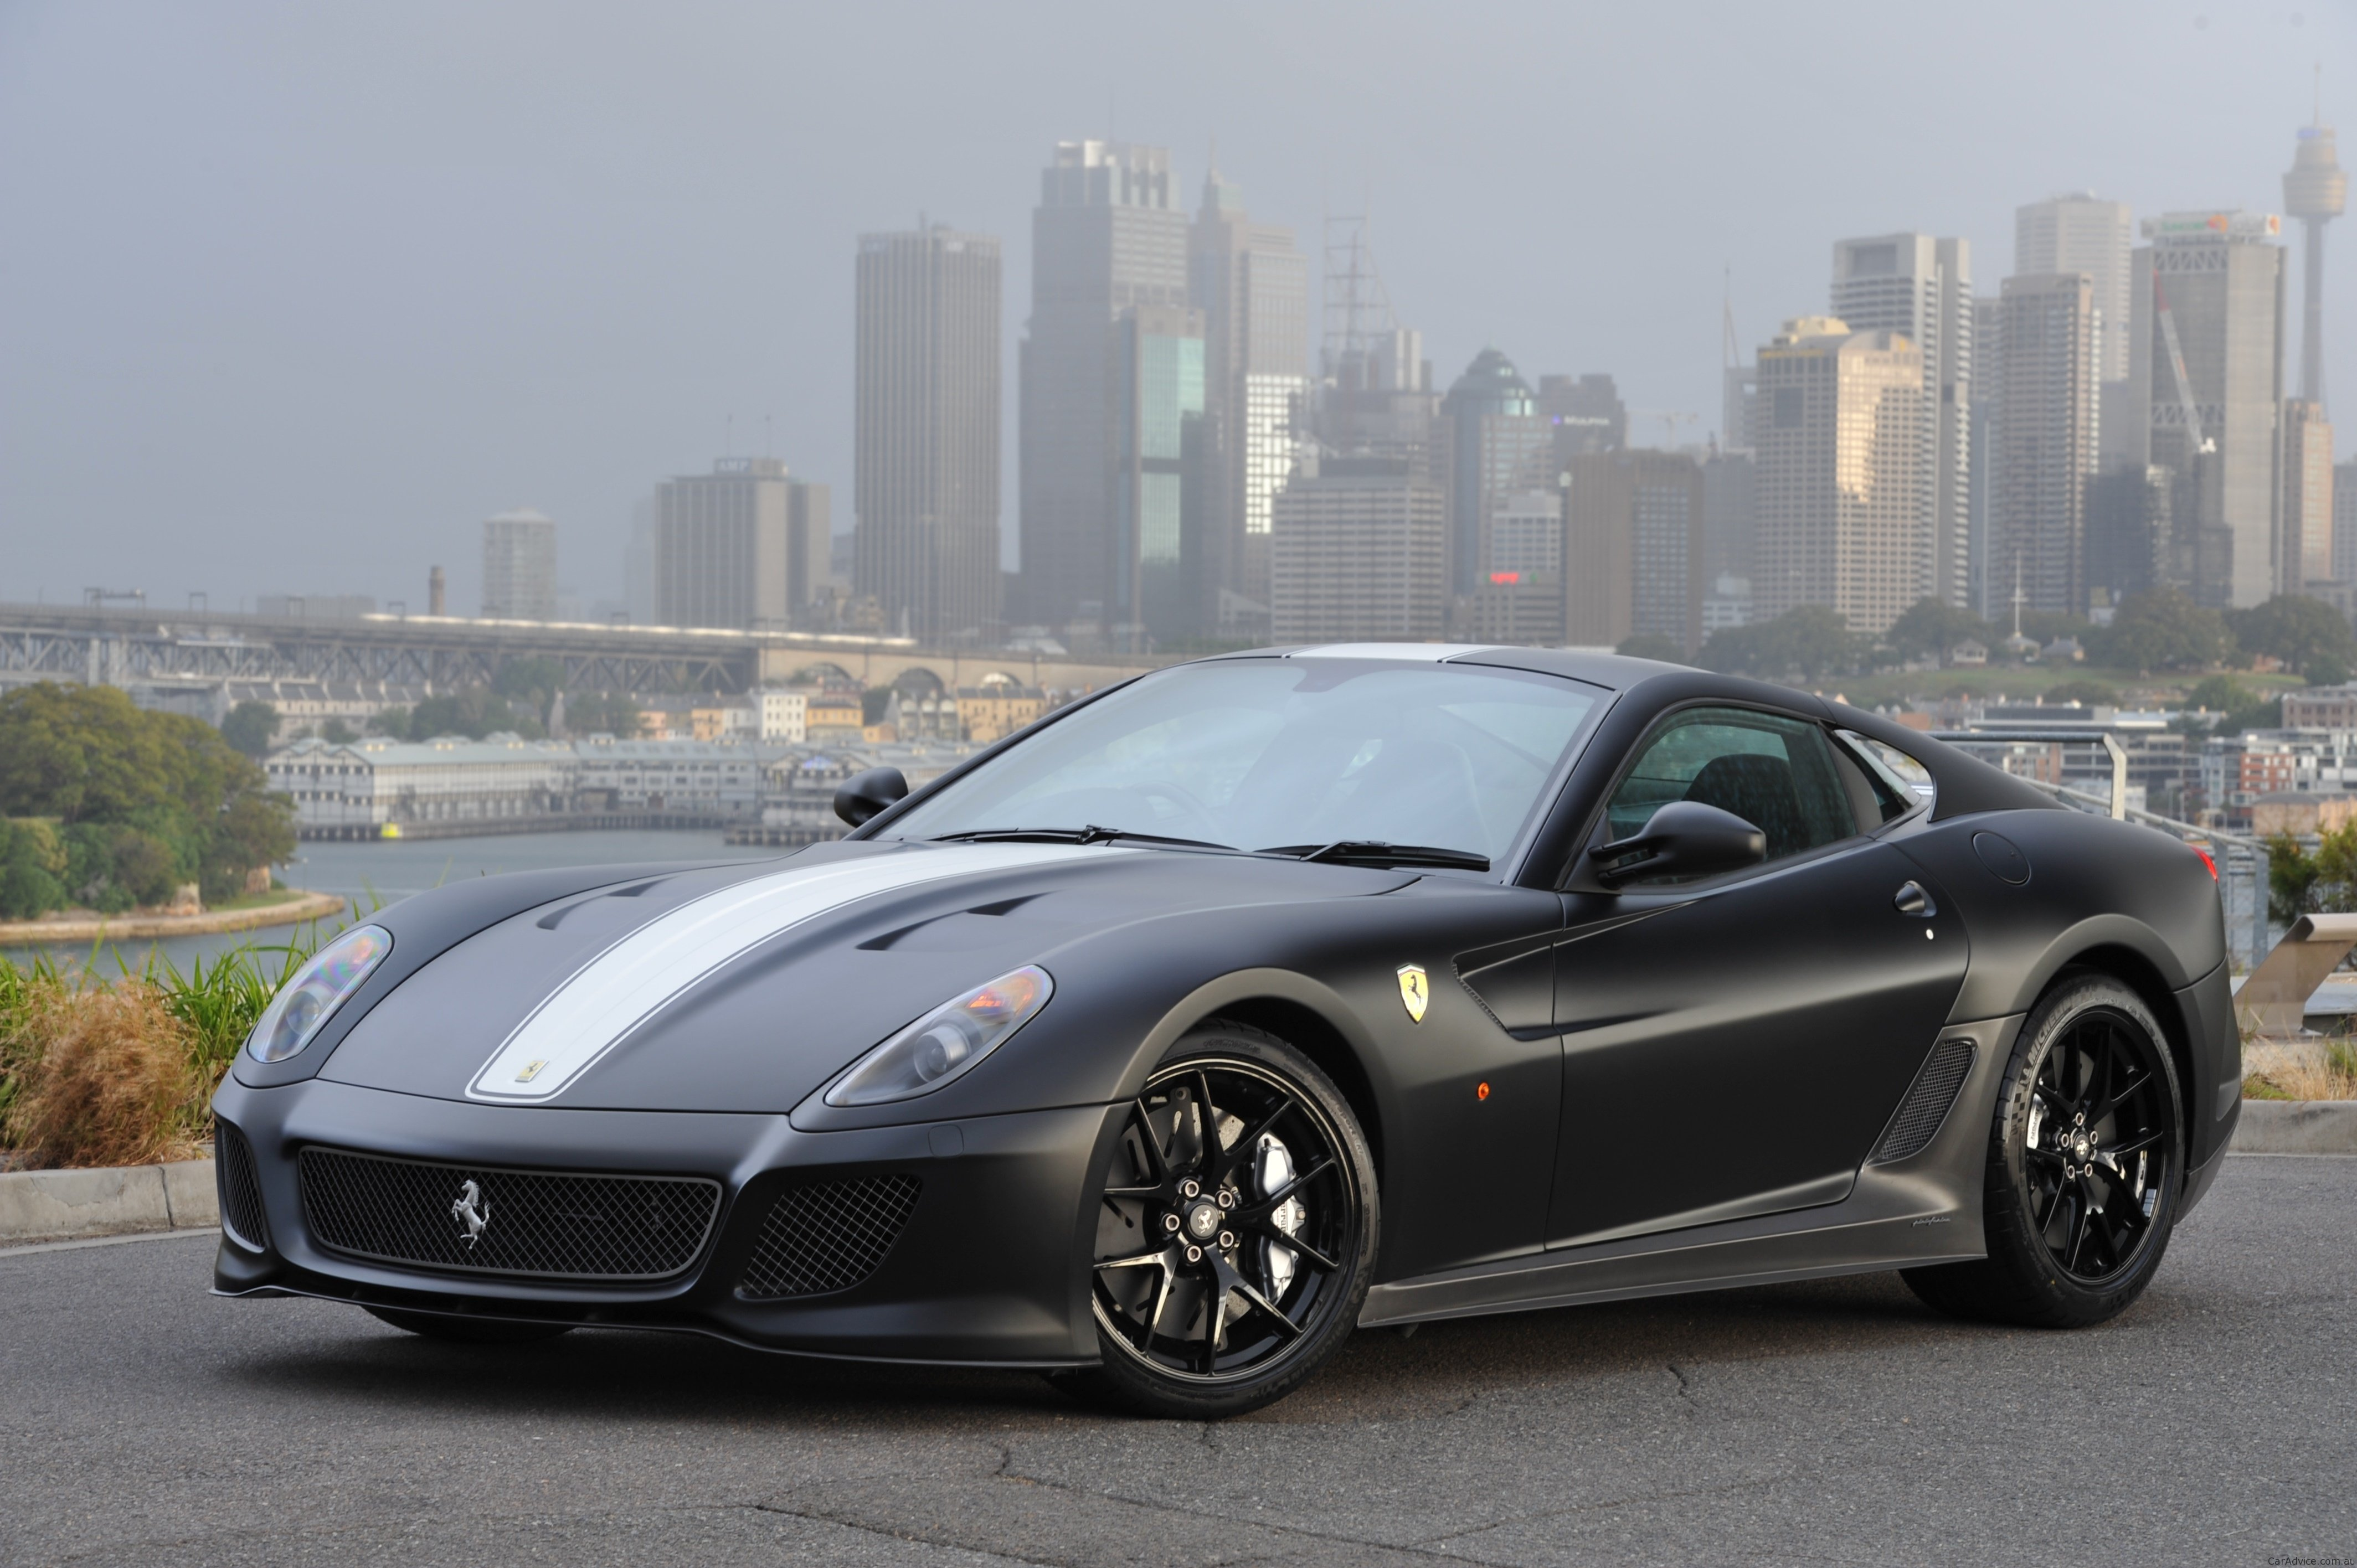 2011 Ferrari 599 Gto Arrives In Australia Photos Caradvice